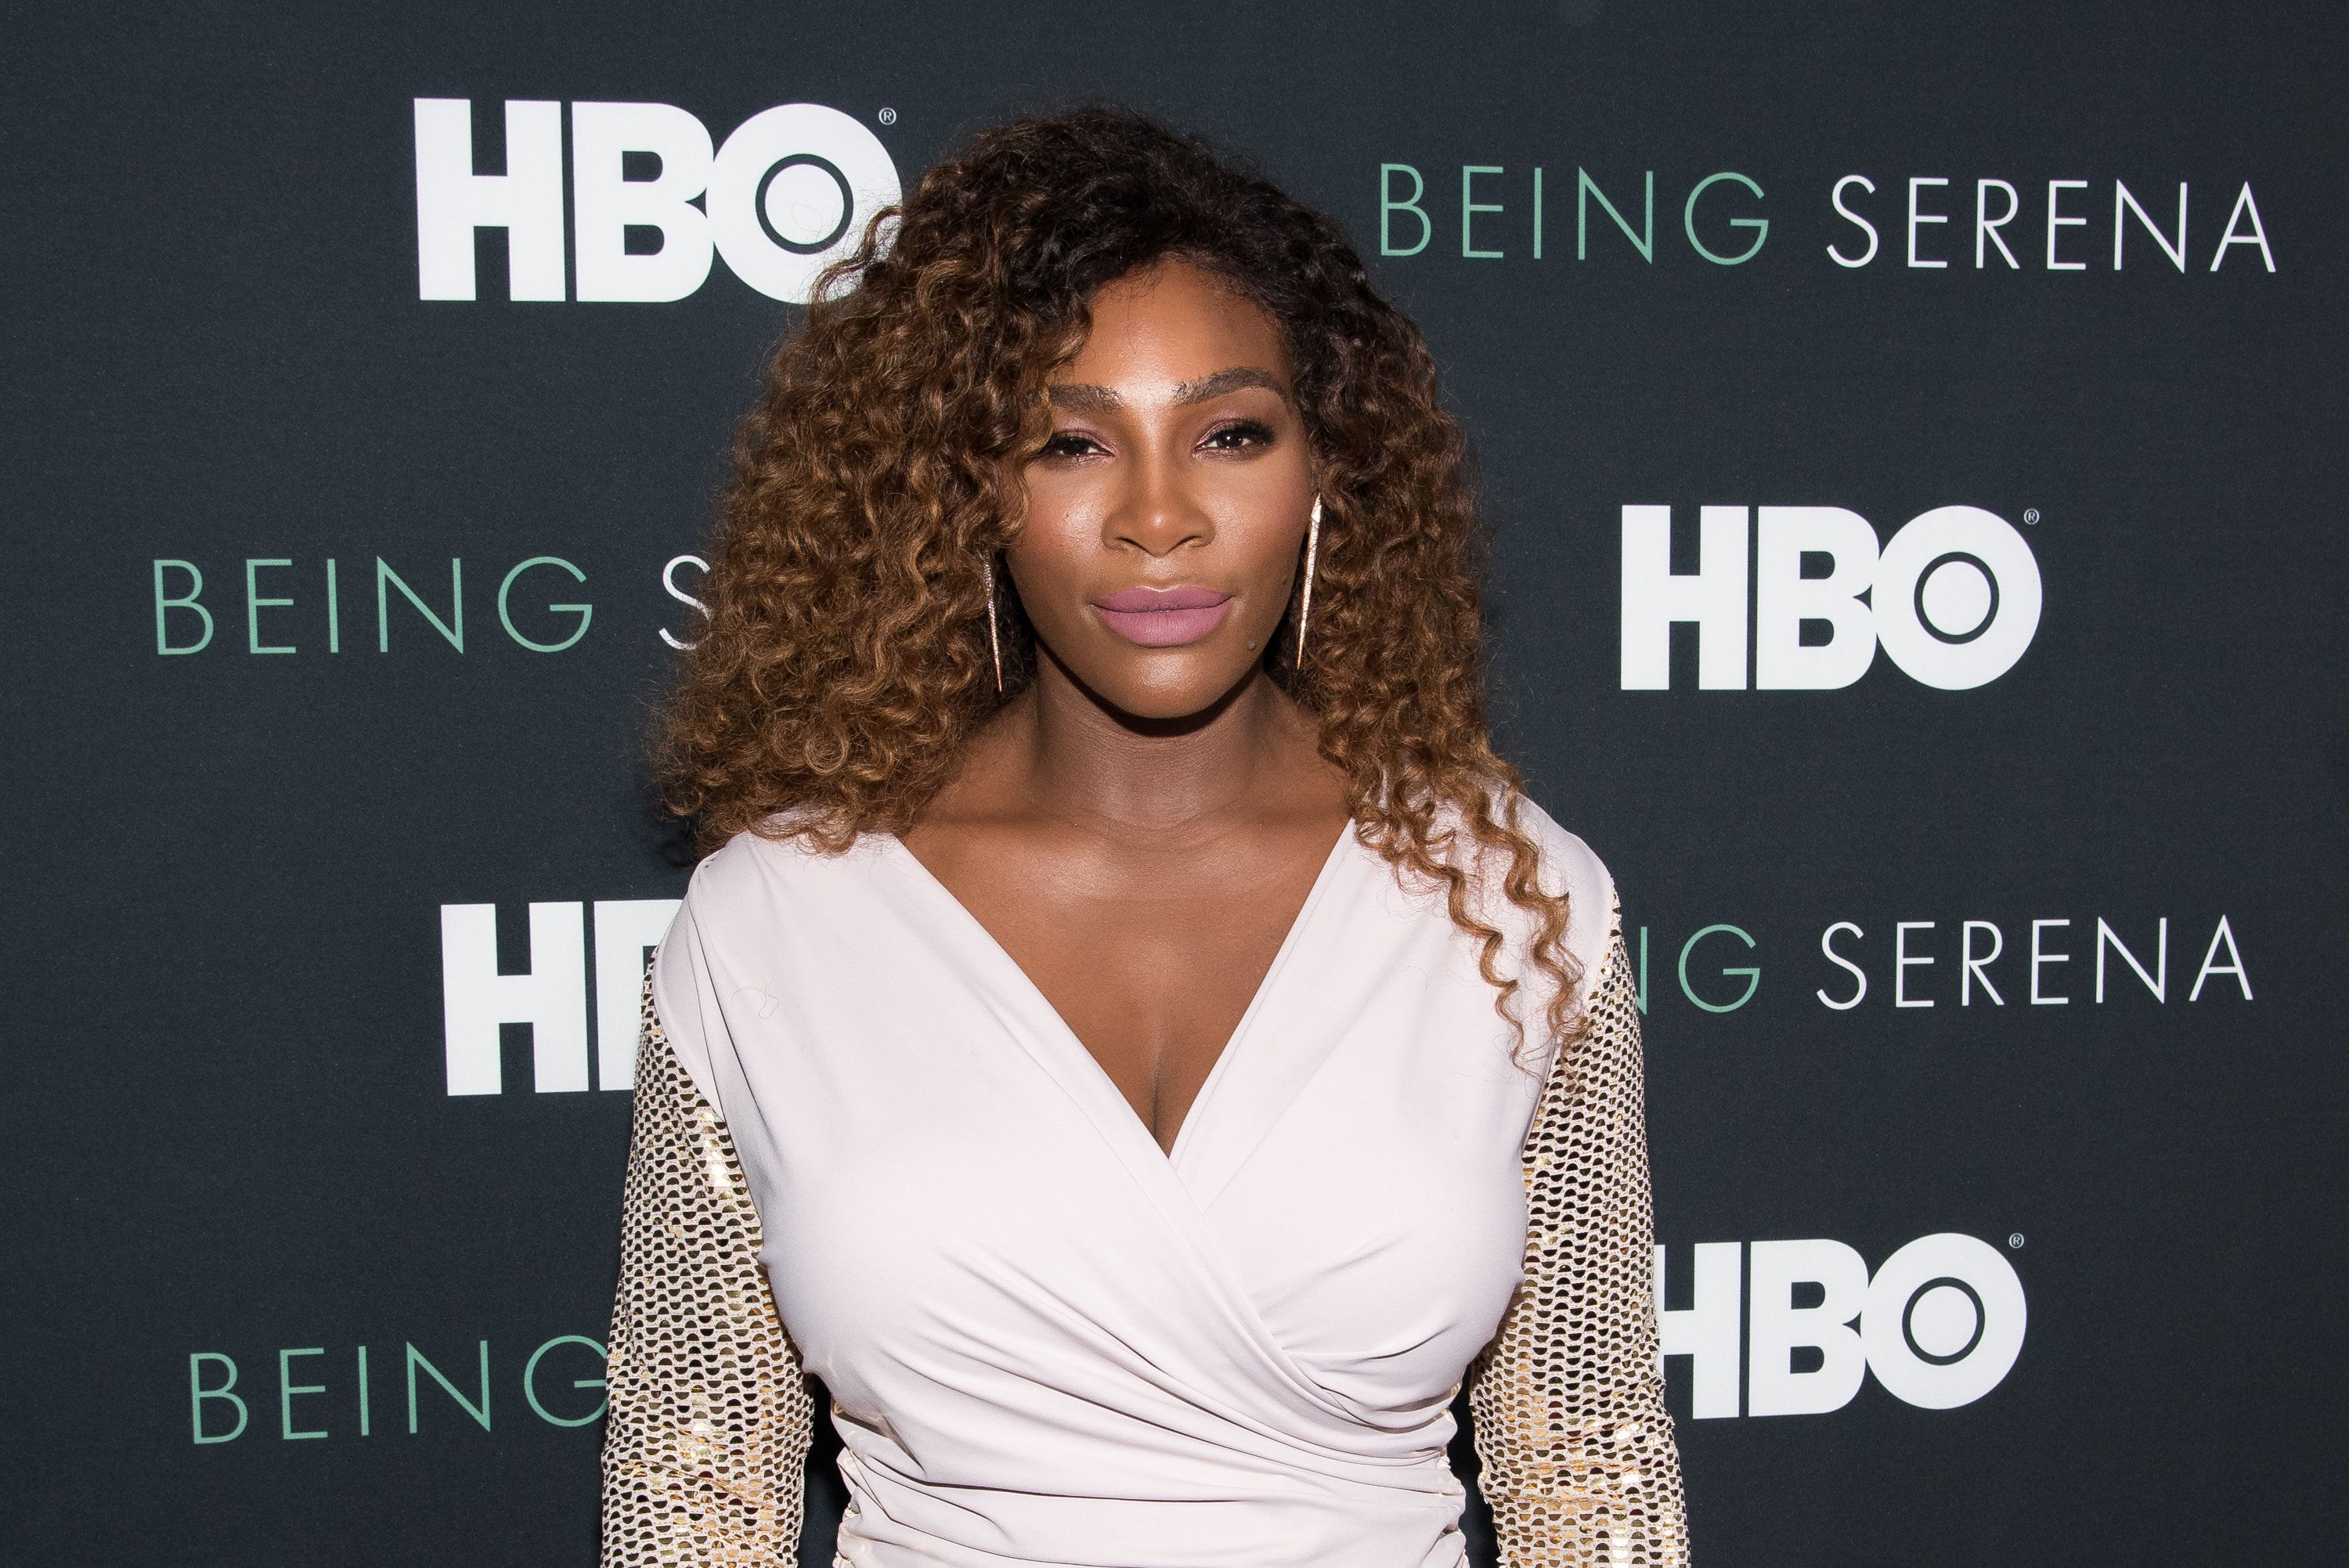 NEW YORK, NY - APRIL 25:  Serena Williams attends the 'Being Serena' New York Premiere at Time Warner Center on April 25, 2018 in New York City.  (Photo by Mike Pont/WireImage)